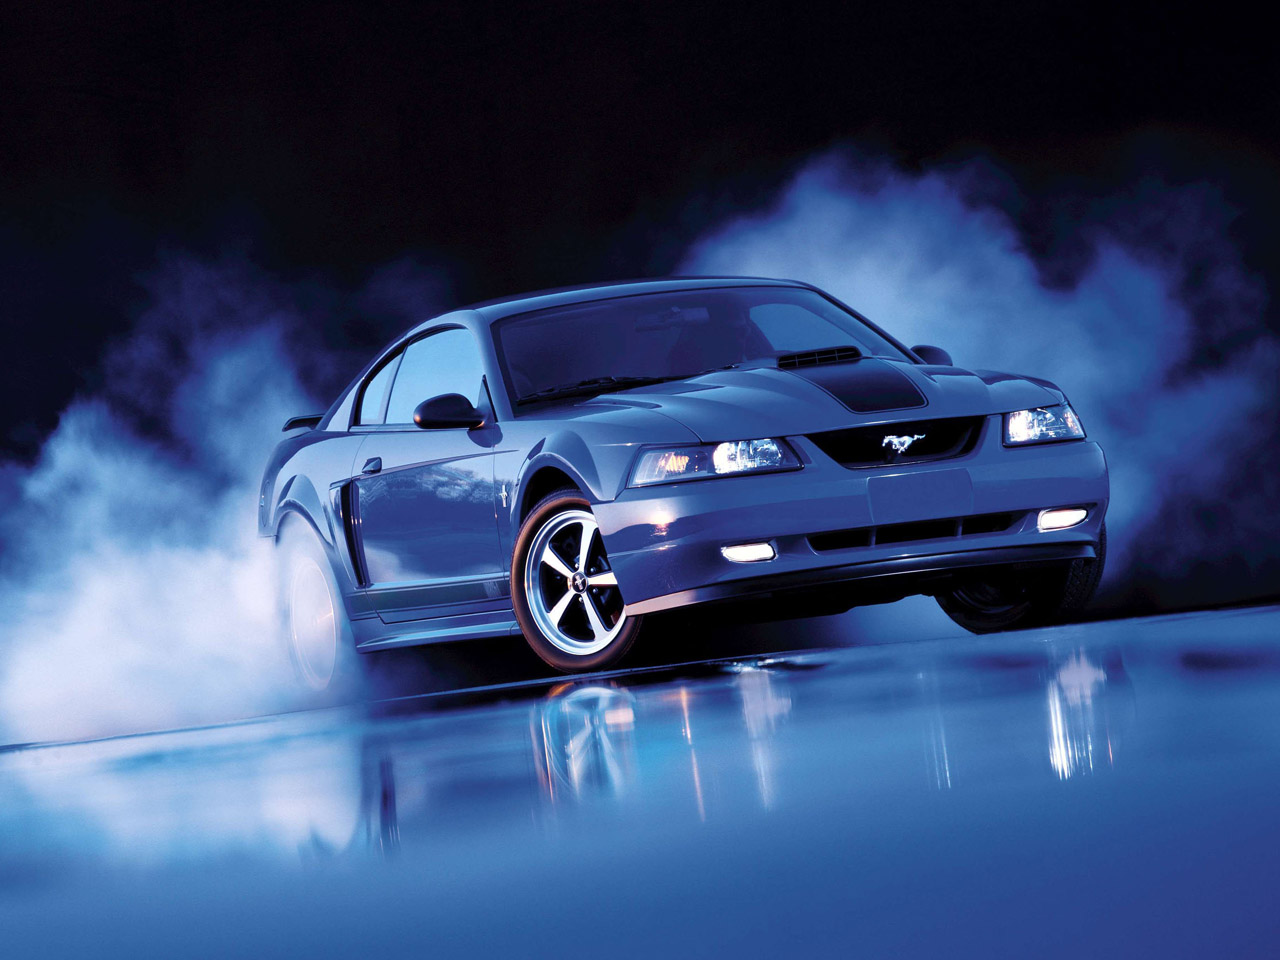 Ford Mustang Cobra Wallpapers | Beautiful Cool Cars Wallpapers